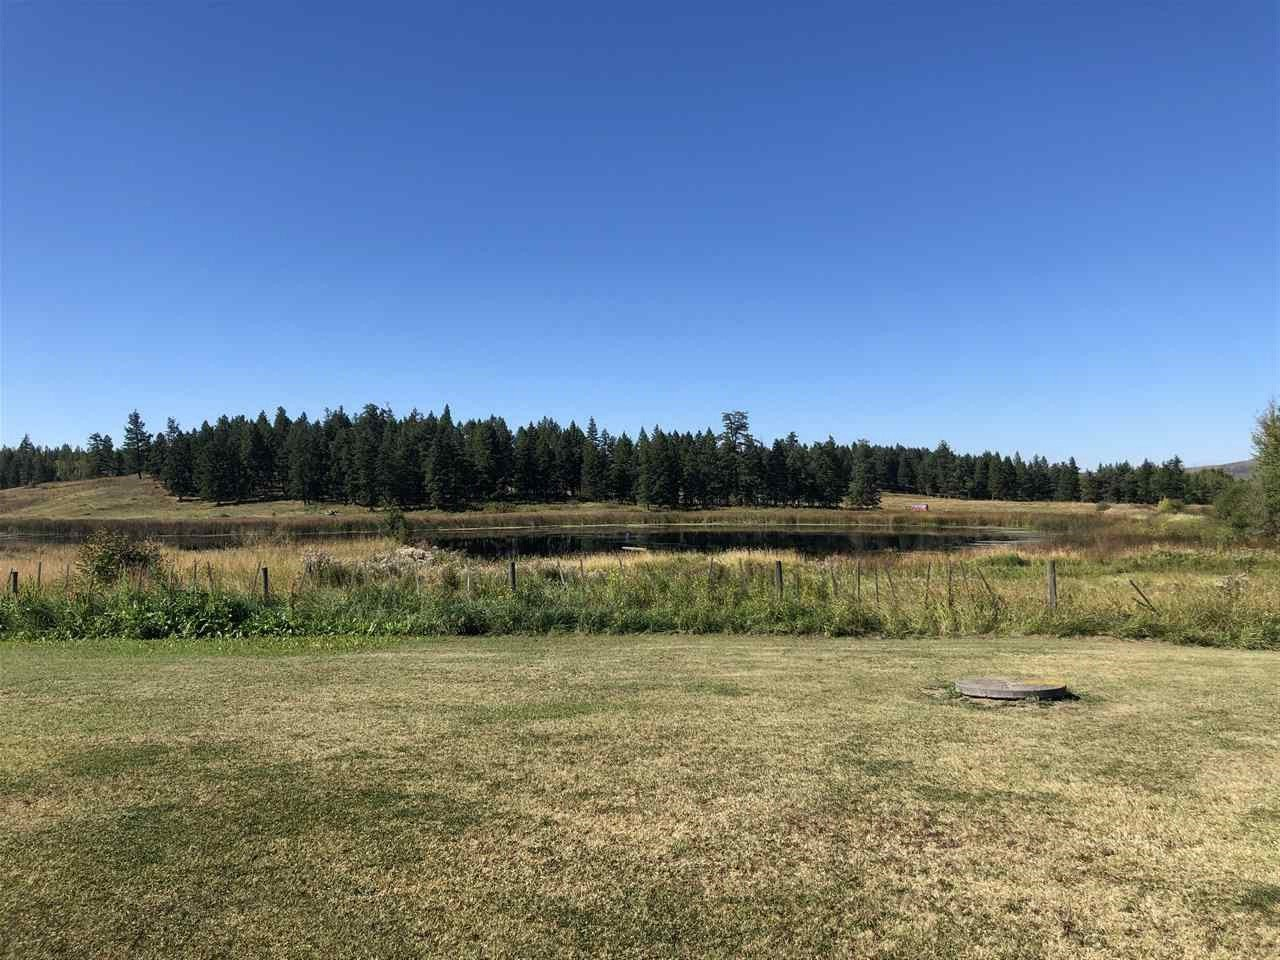 Photo 7: Photos: 3090 150 MILE FRONTAGE Road: 150 Mile House Land Commercial for sale (Williams Lake (Zone 27))  : MLS®# C8034187